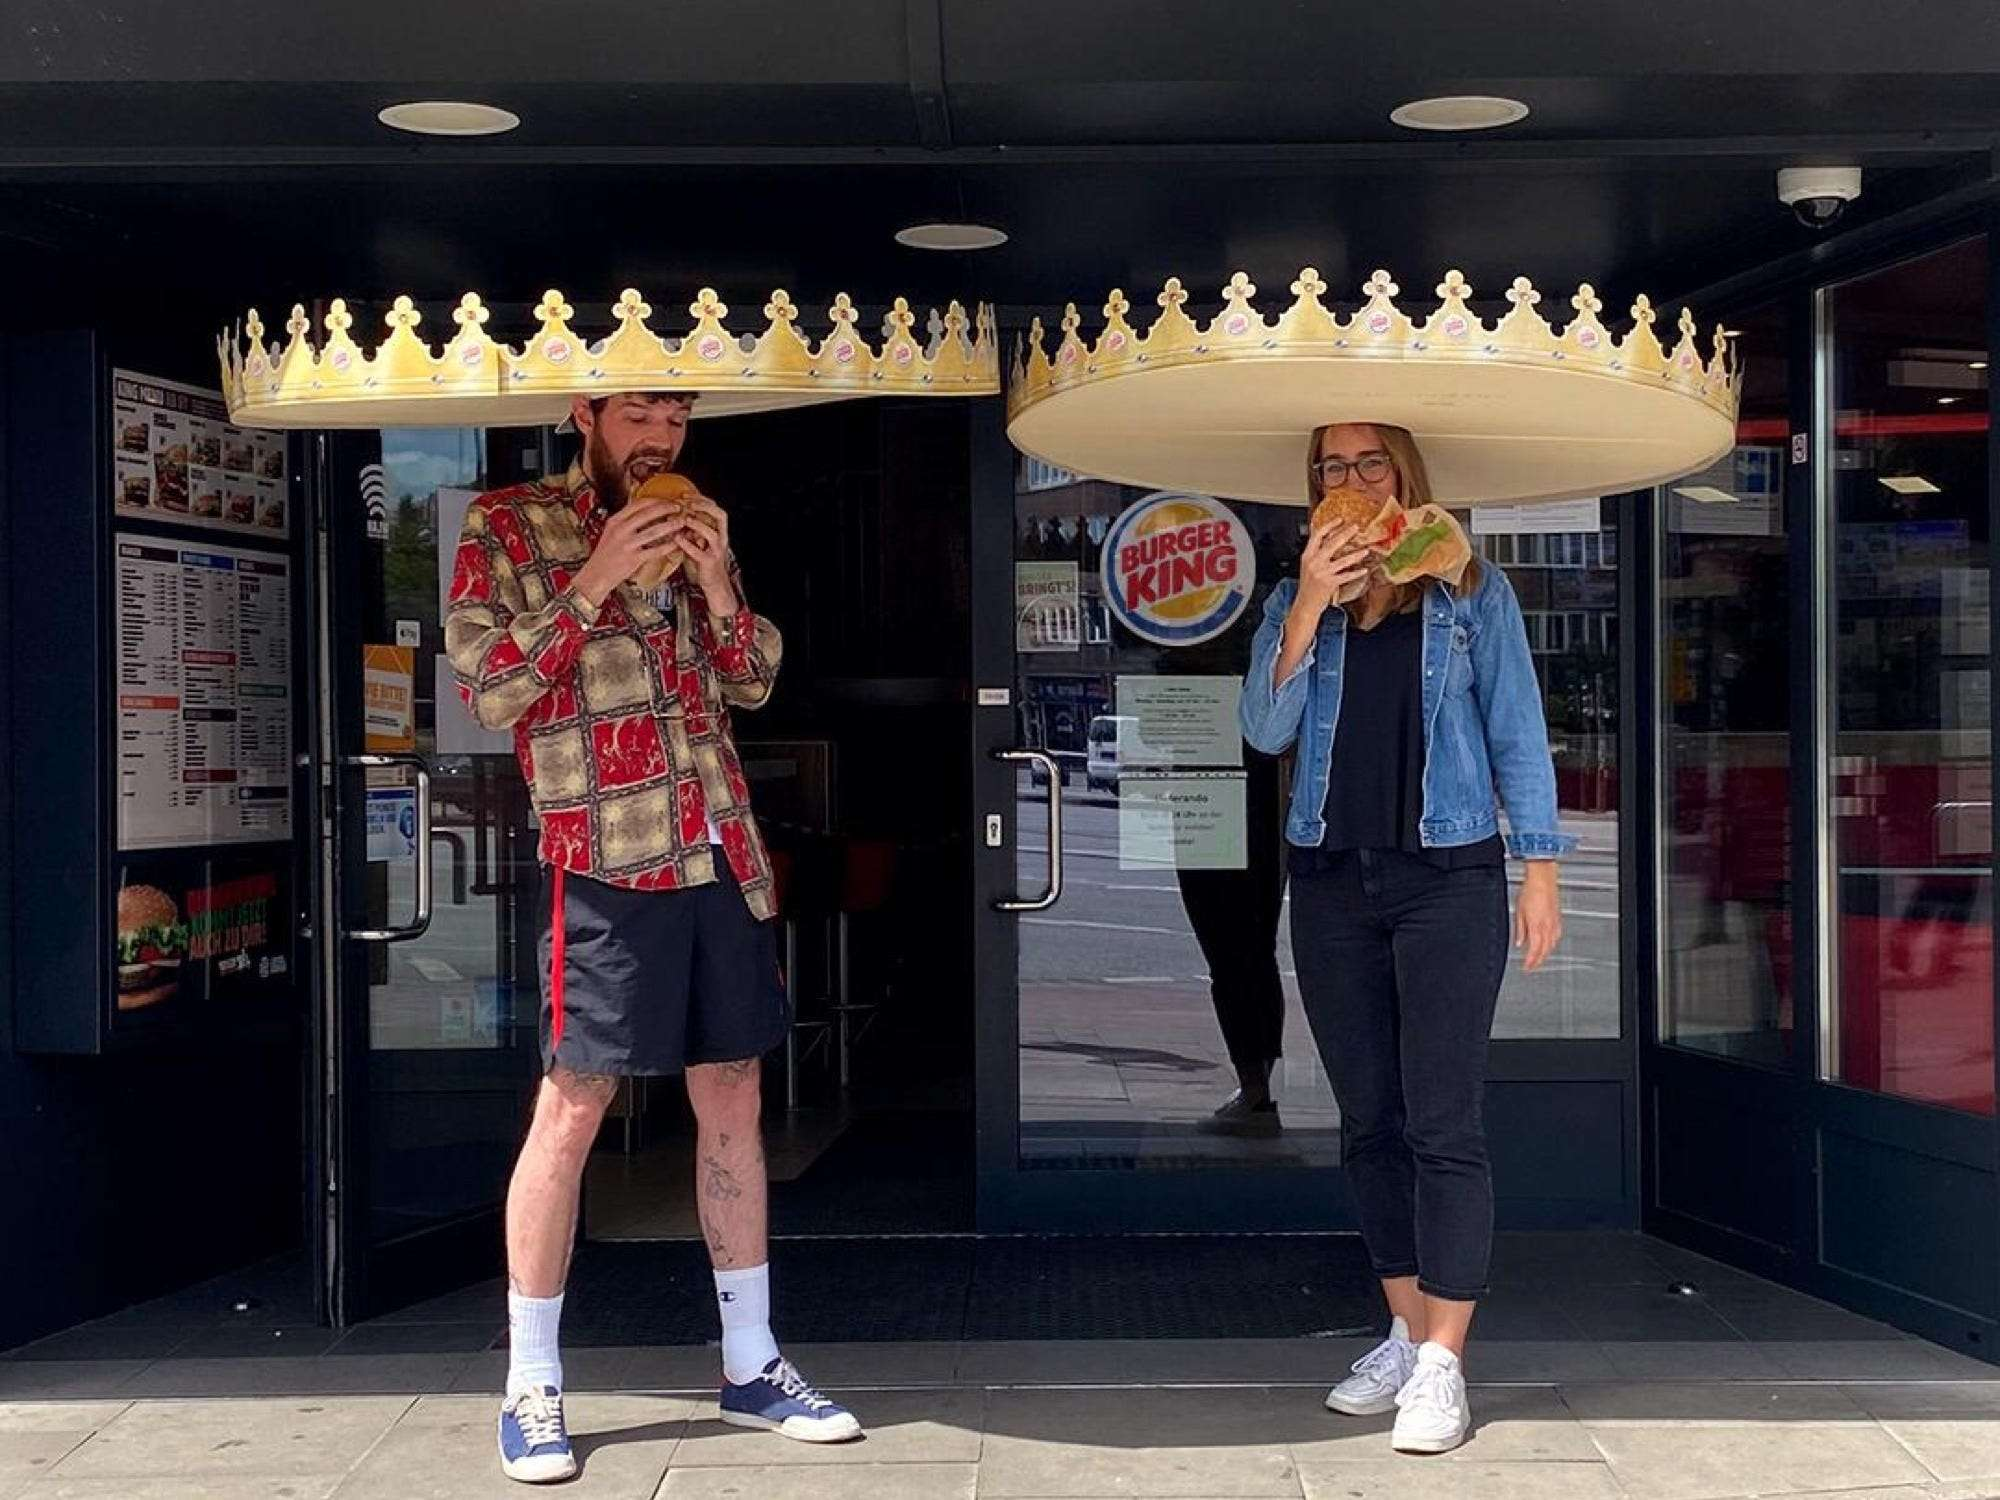 Burger King debuts 'social distance crowns' in Germany, as restaurants test quirky ways to keep customers apart